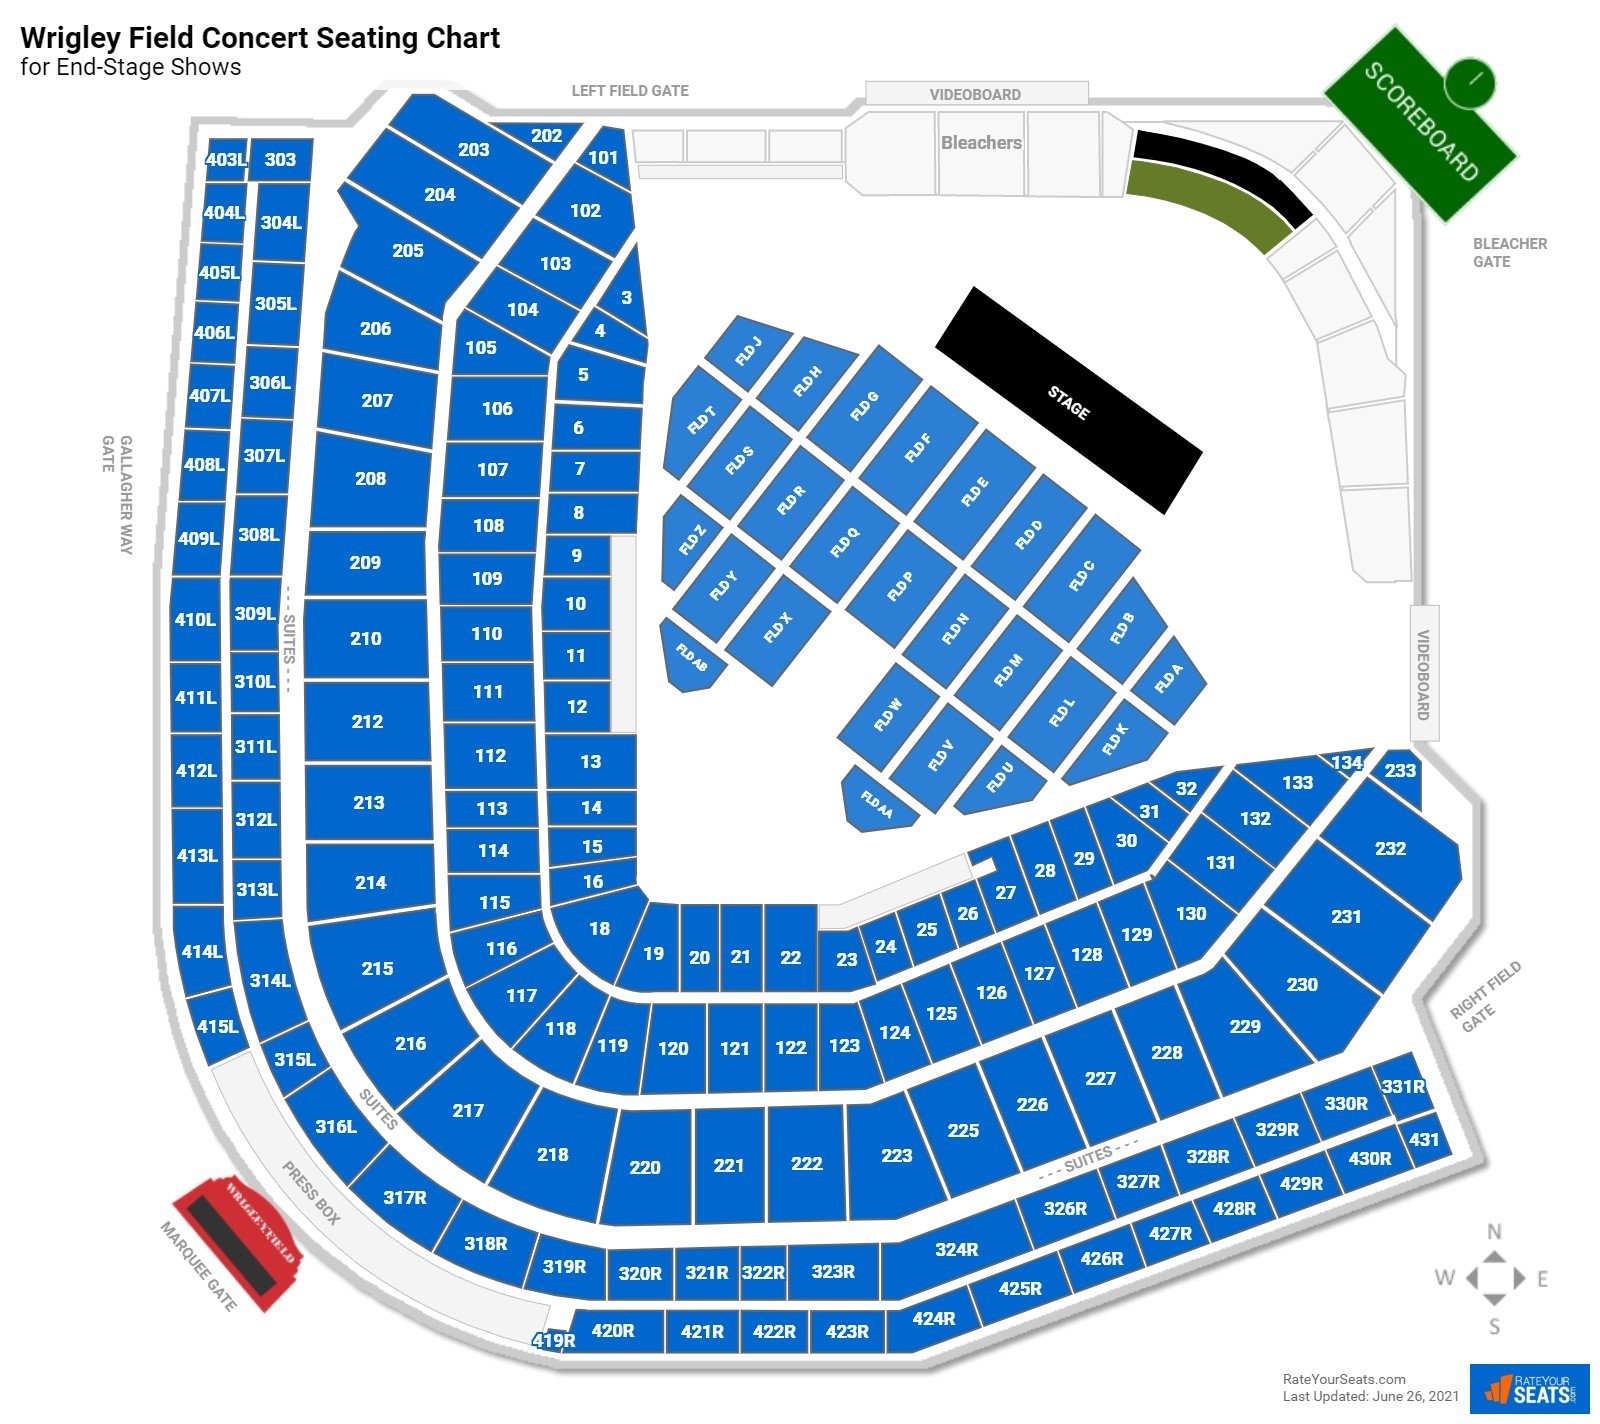 Wrigley Field Seating Chart for Concerts